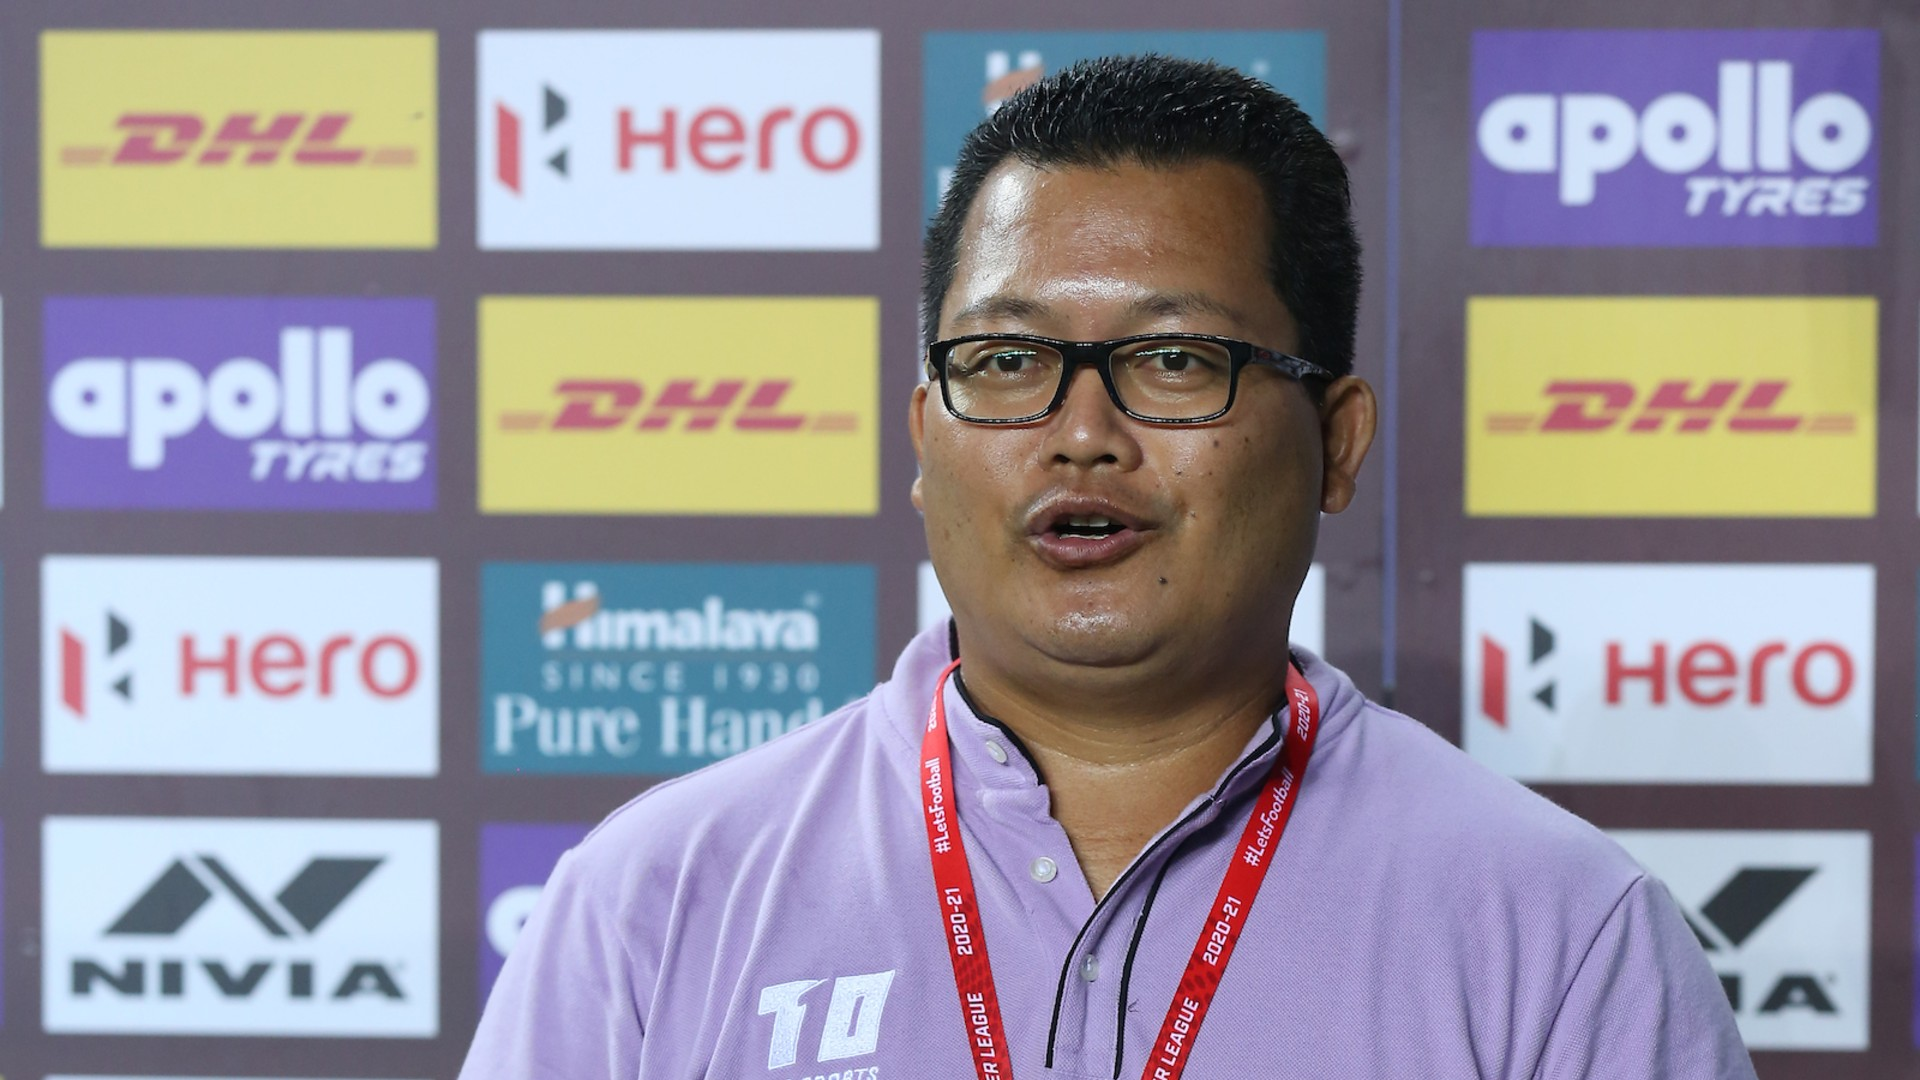 Hyderabad FC's Thangboi Singto: Our Indian players did brilliantly against Jamshedpur FC